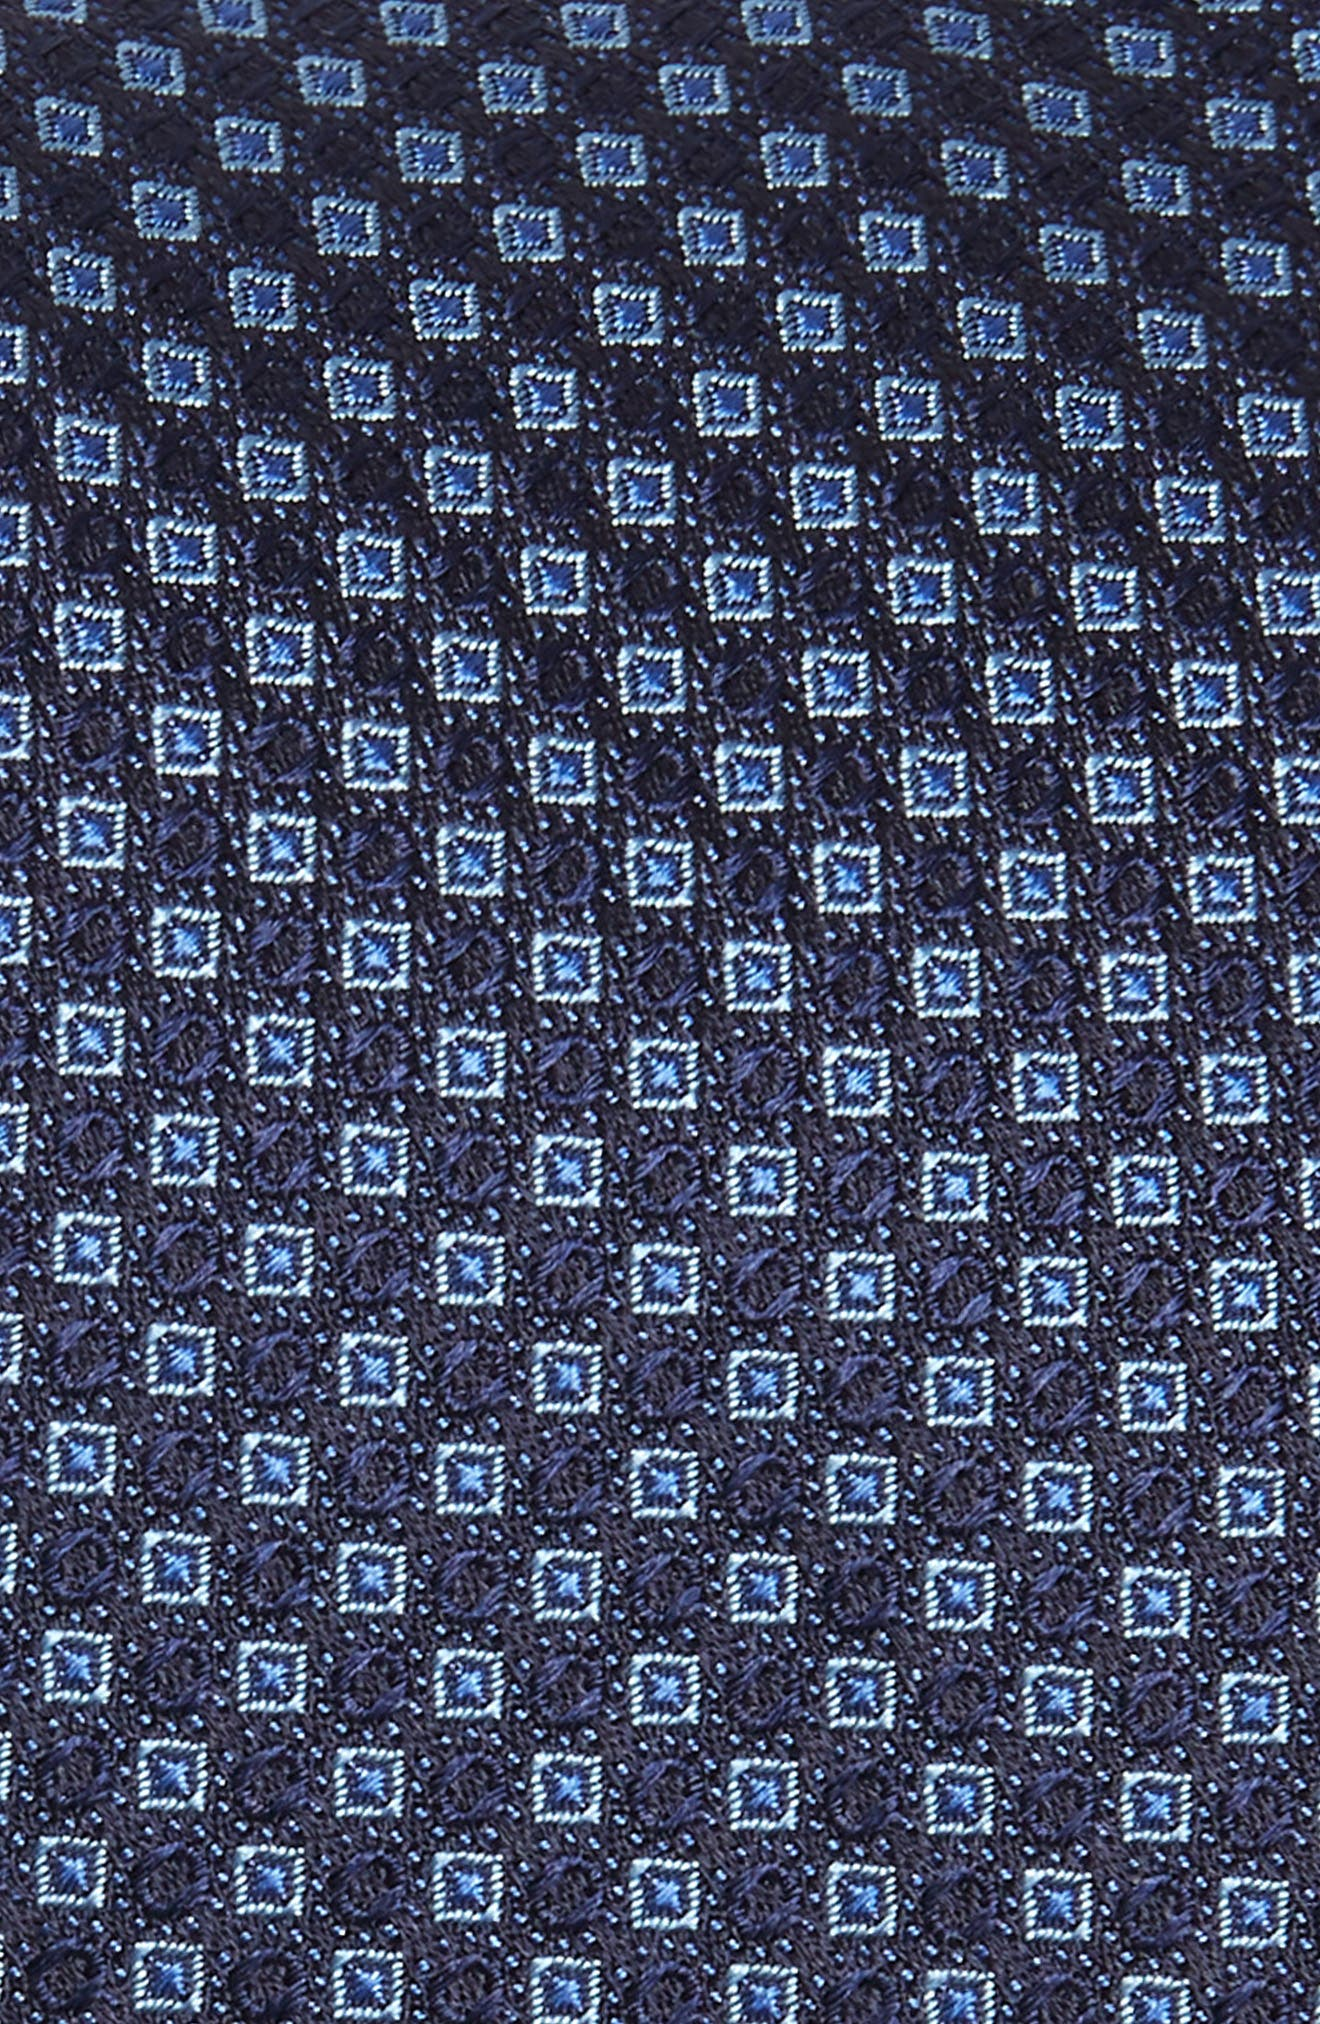 Enna Neat Silk Tie,                             Alternate thumbnail 2, color,                             Navy